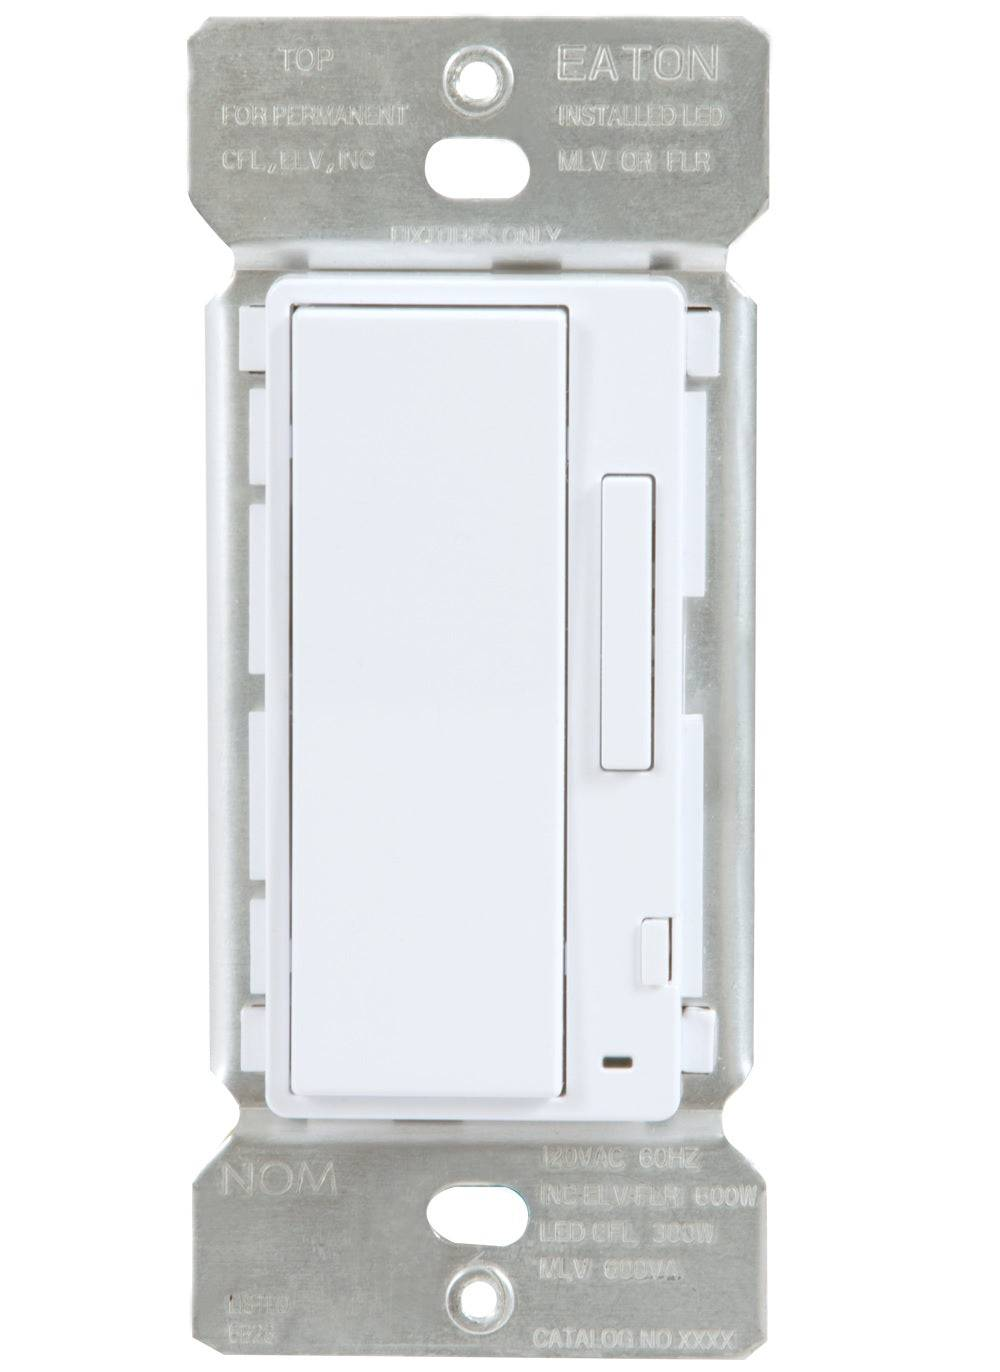 Eaton Hiwac1ble40awh Halo Home In-wall Accessory Dimmer, White